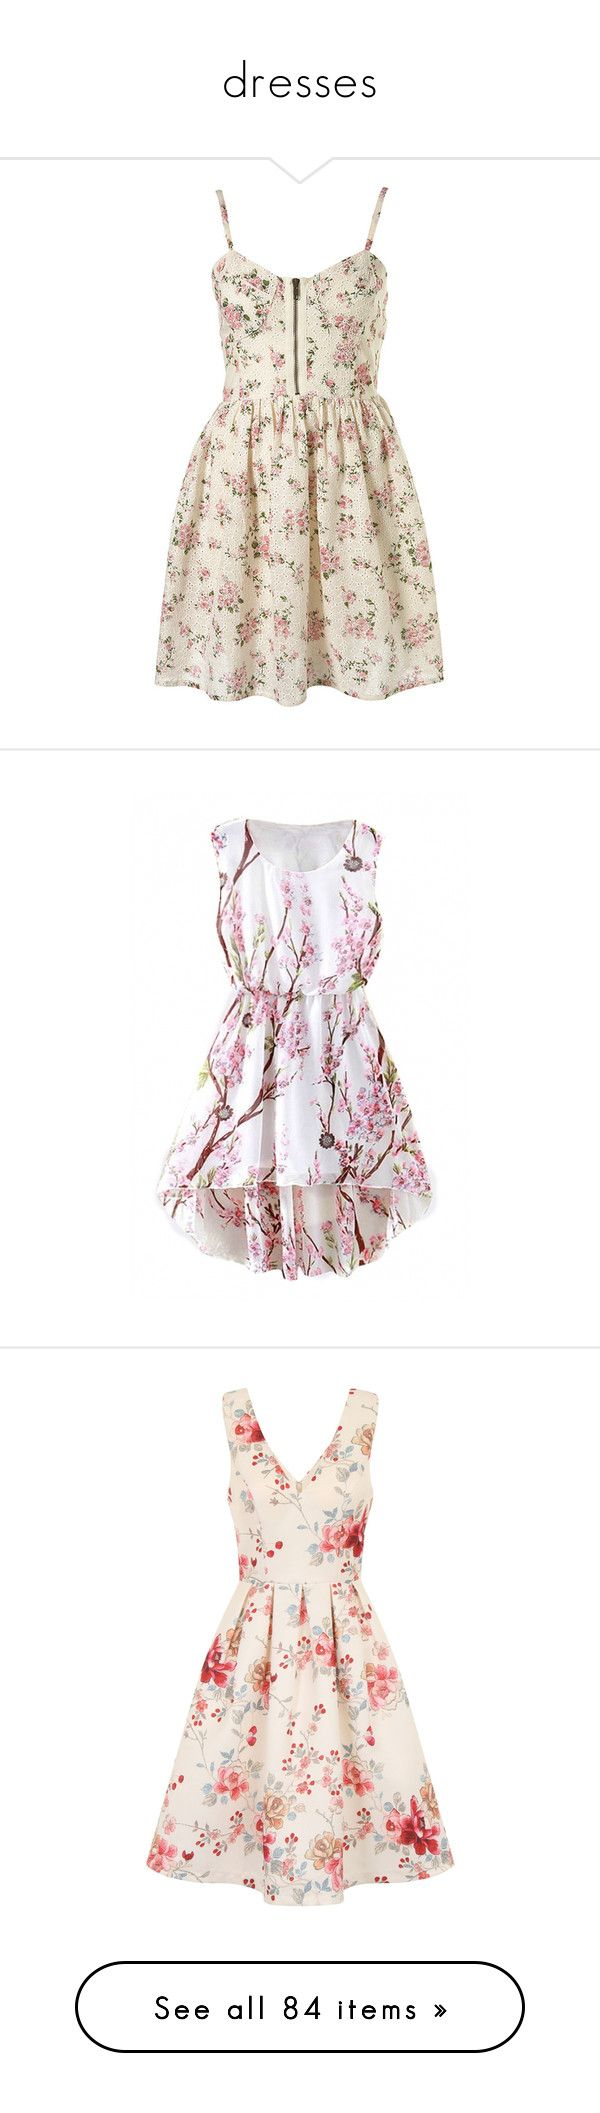 """""""dresses"""" by black-on-white ❤ liked on Polyvore featuring dresses, vestidos, short dresses, floral, women, short corset dress, cotton floral dress, mini dress, floral corset and beautifulhalo"""